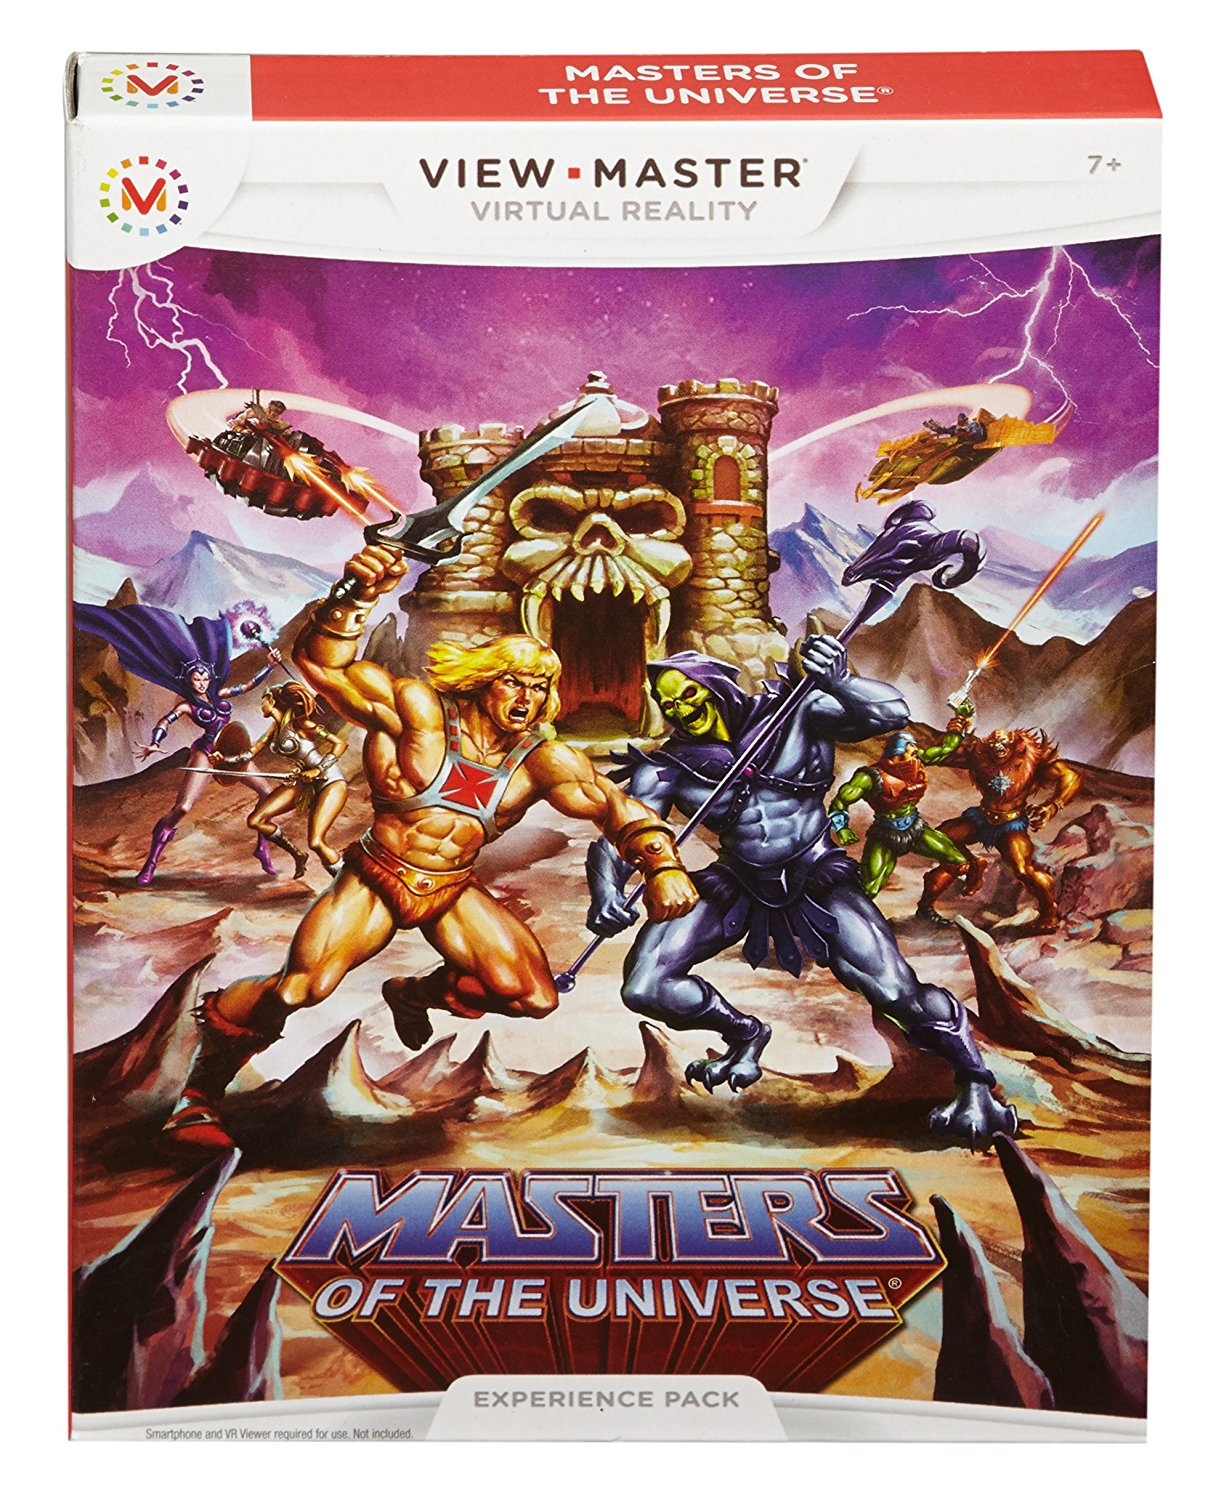 Image for View-Master Experience Pack Masters of the Universe - virtual reality tag from Circuit City